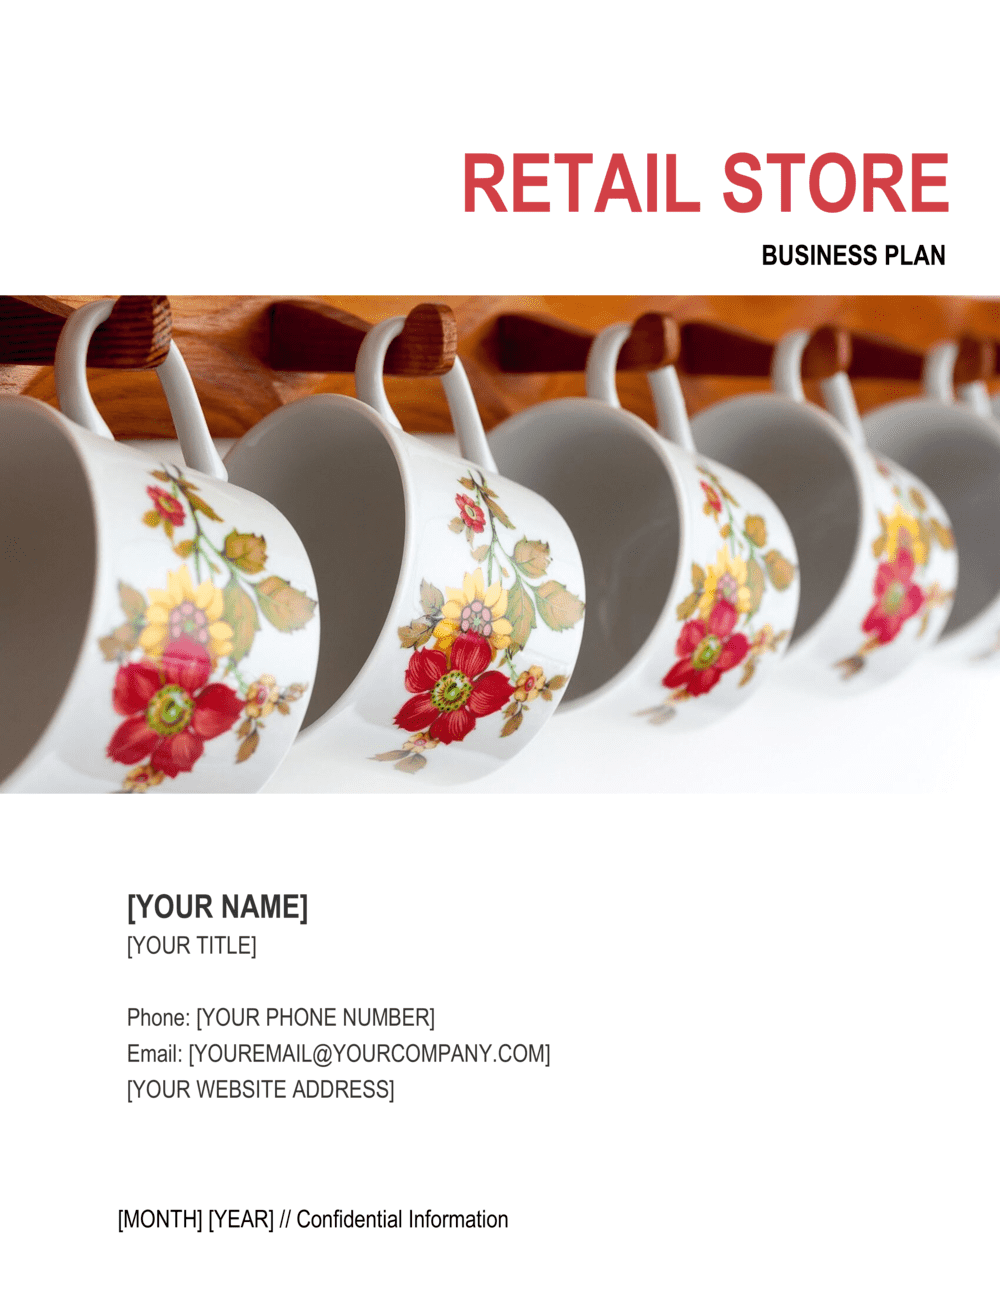 Business-in-a-Box's Retail Store Business Plan 5 Template